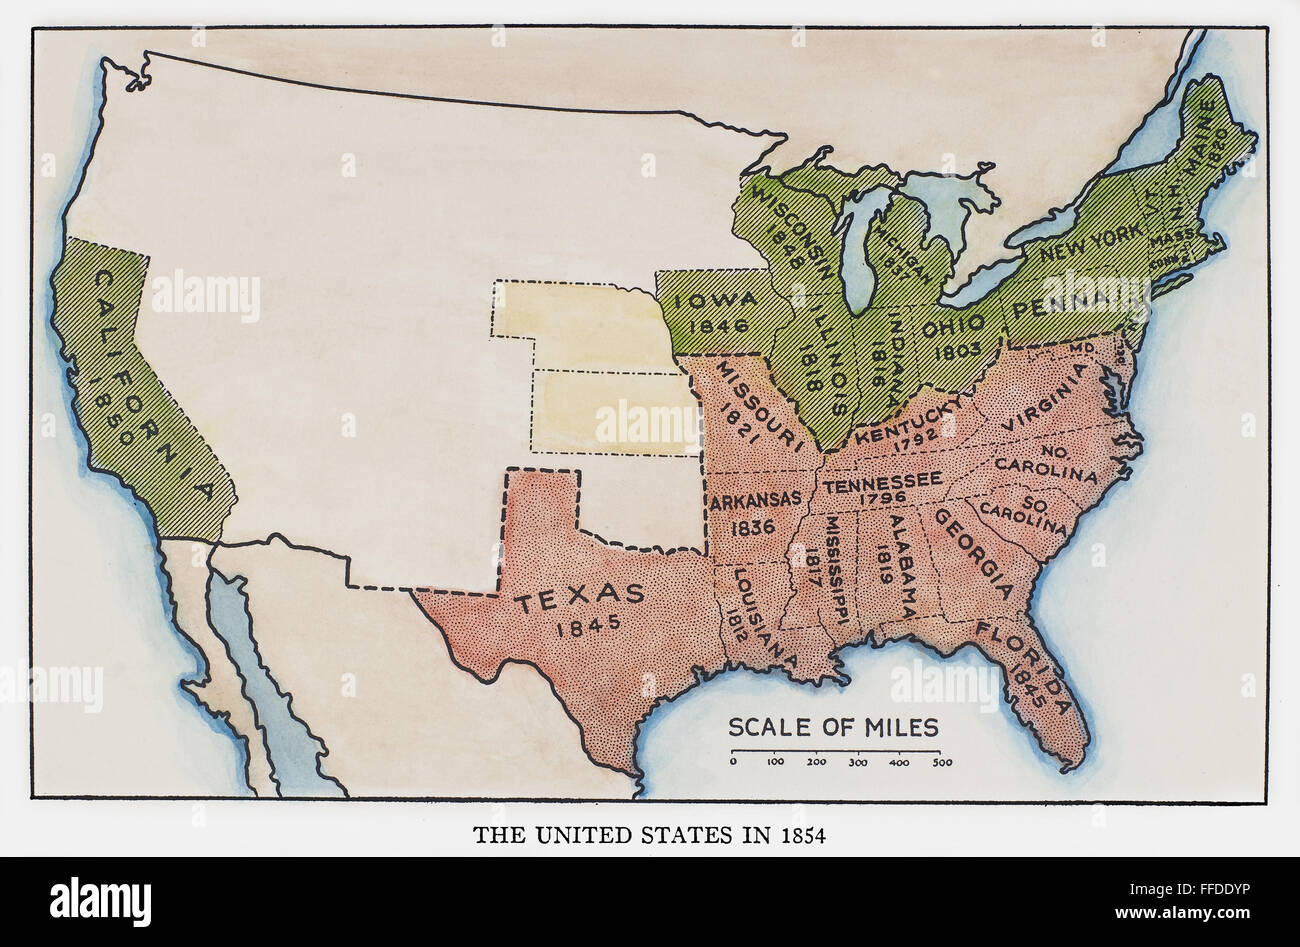 UNITED STATES MAP, 1854. /nMap of the United States at the time of ...